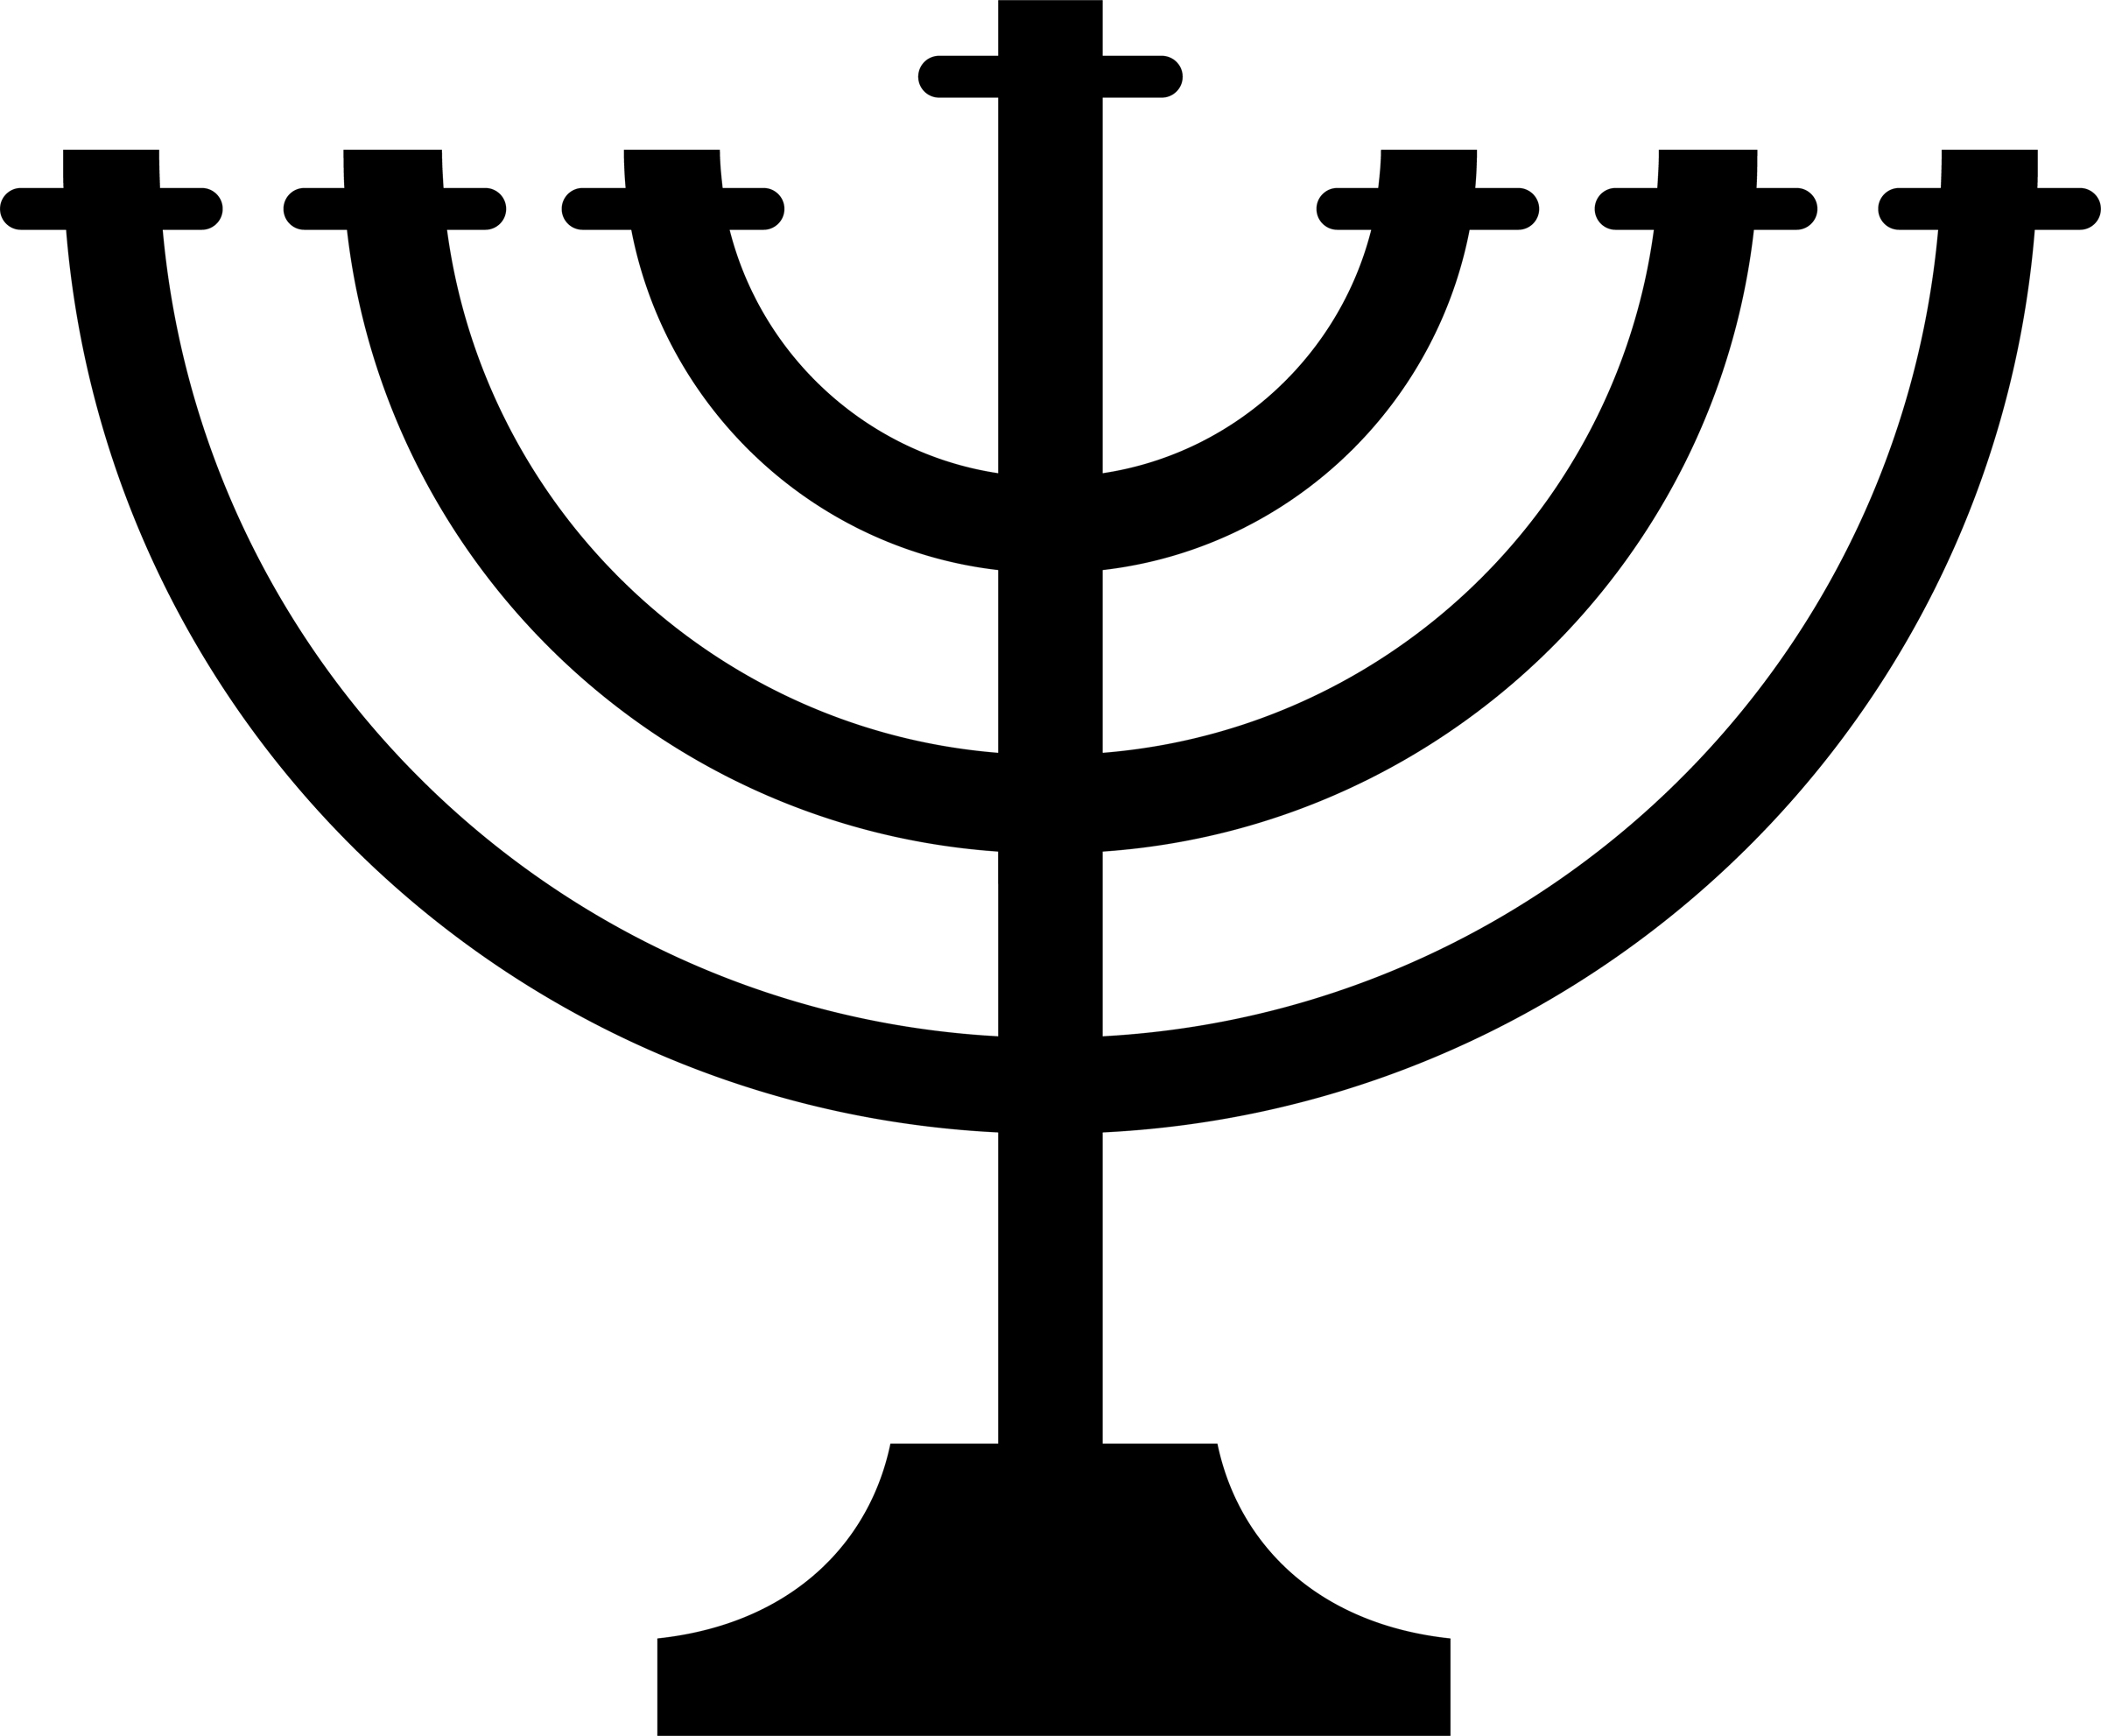 Menorah clipart simple. Free pictures of download